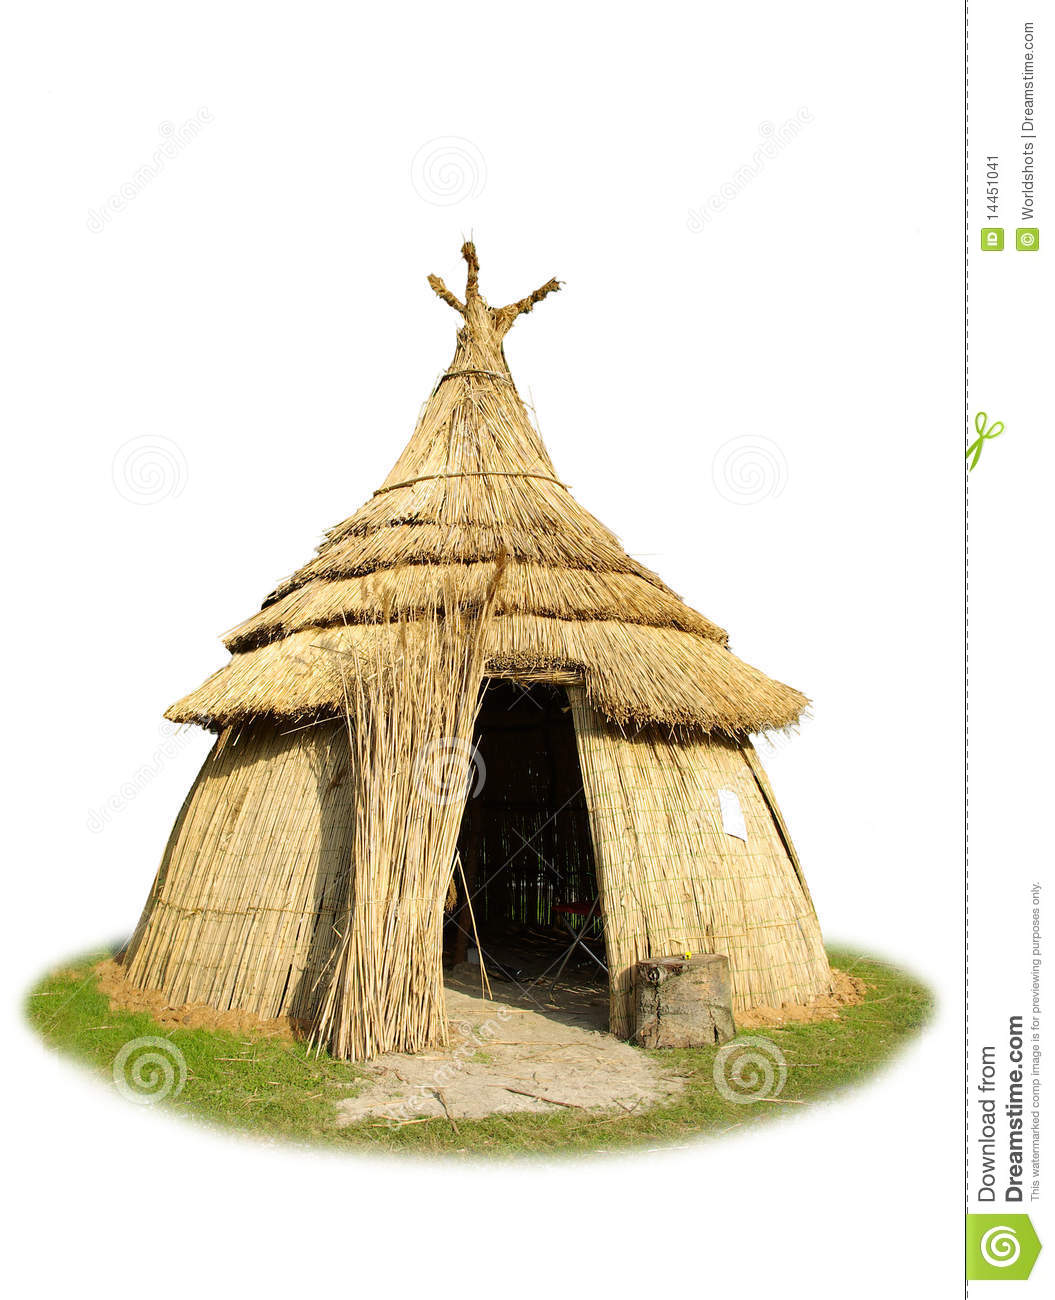 Background isolated picture of african thatched hut made of straw